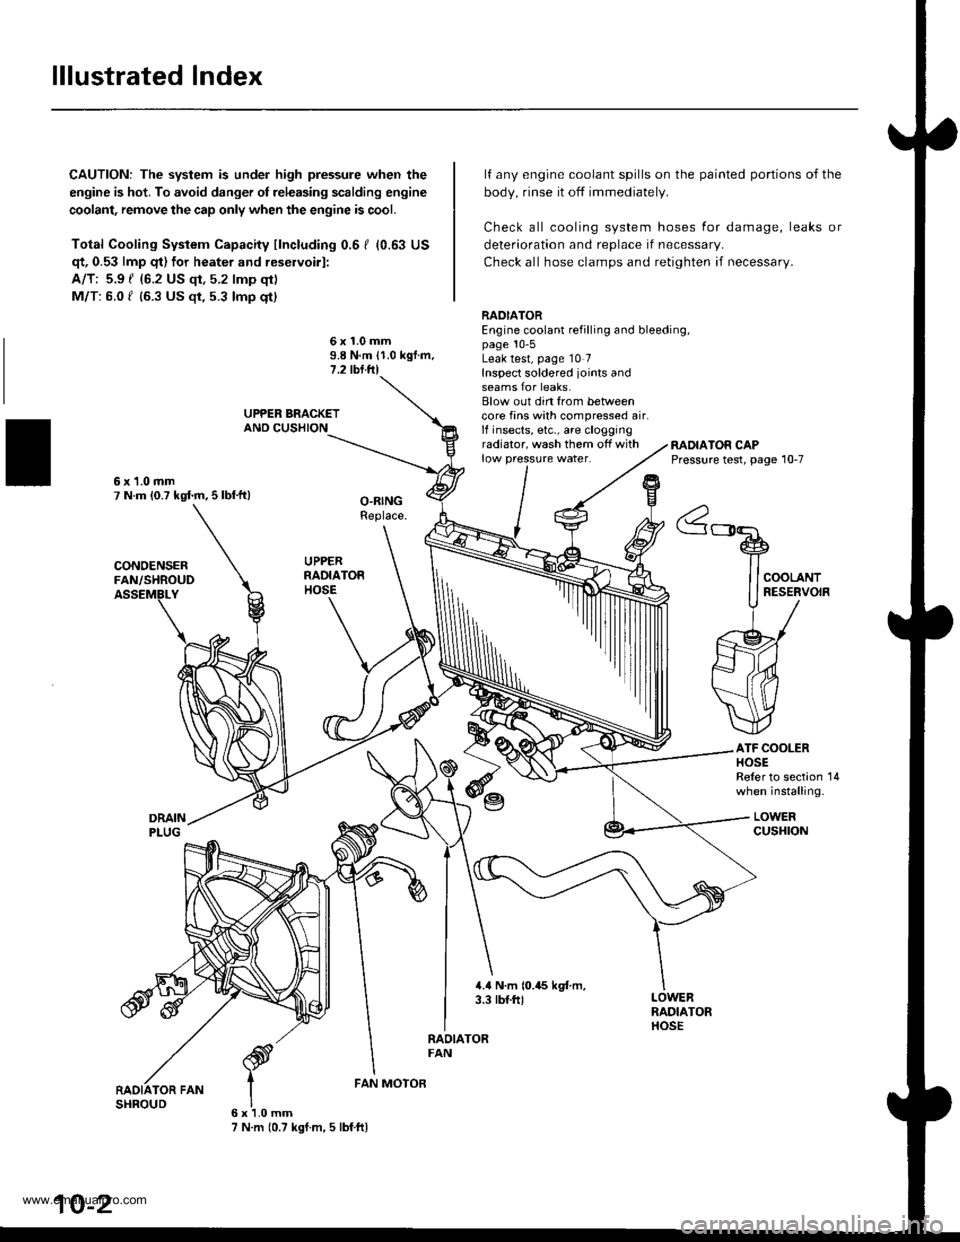 Check Engine Honda Cr V 1998 Rd1 Rd3 1g Workshop Manual Wiring Diagram Civic Obd2 Ckf Page